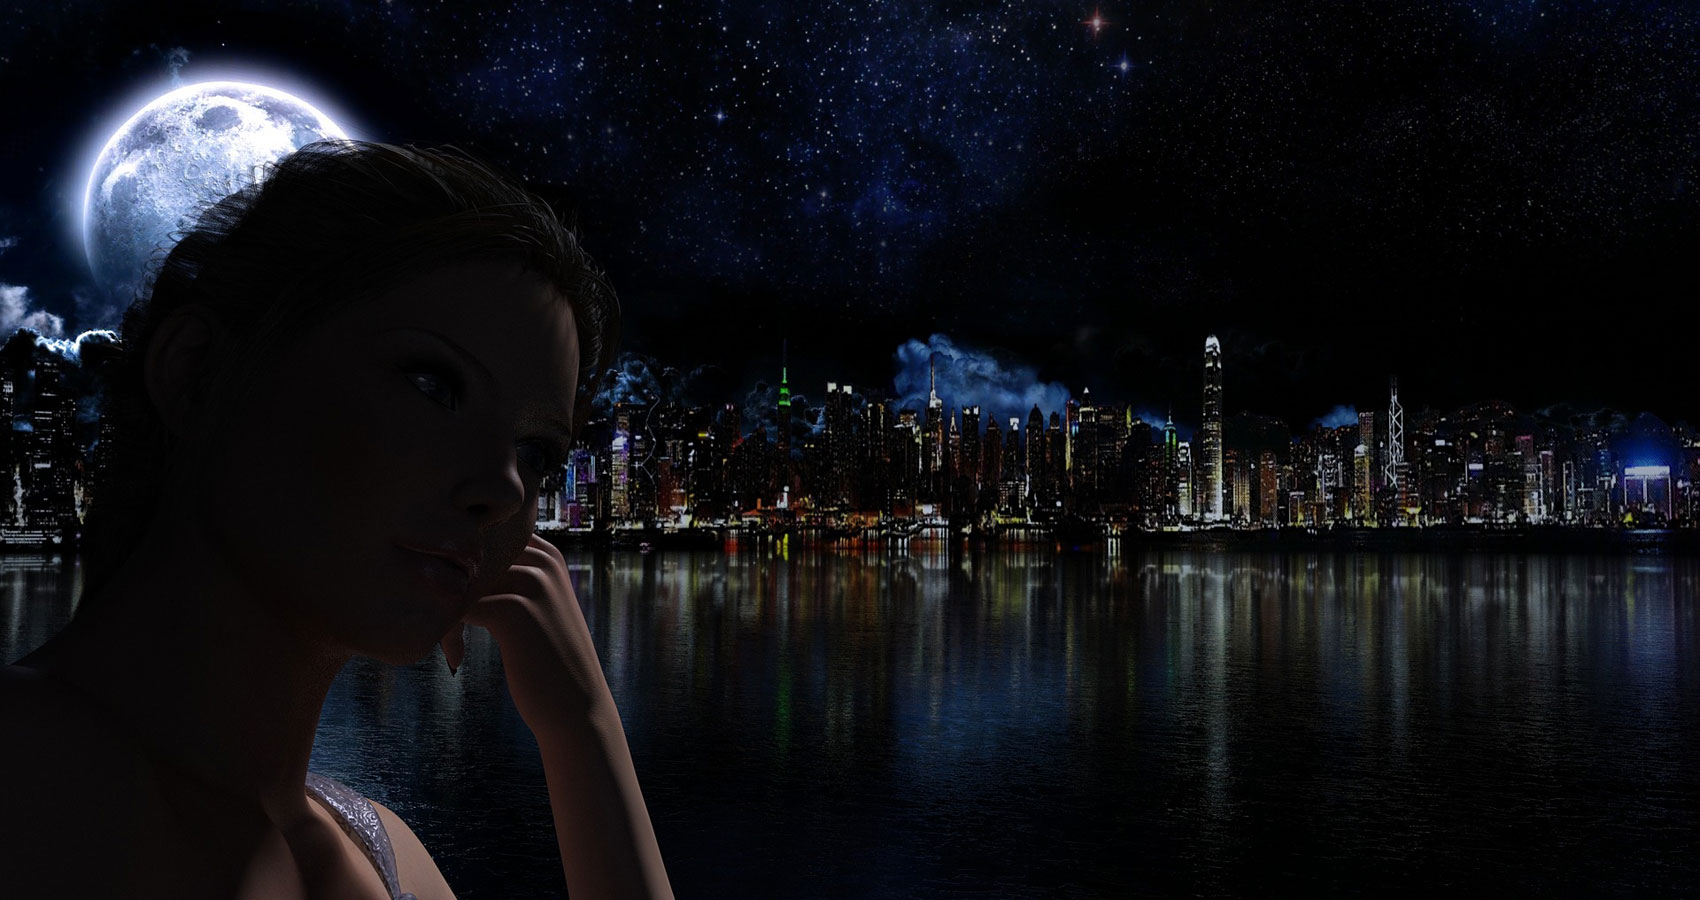 Meant For Moonlight by Kindra M. Austin at Spillwords.com